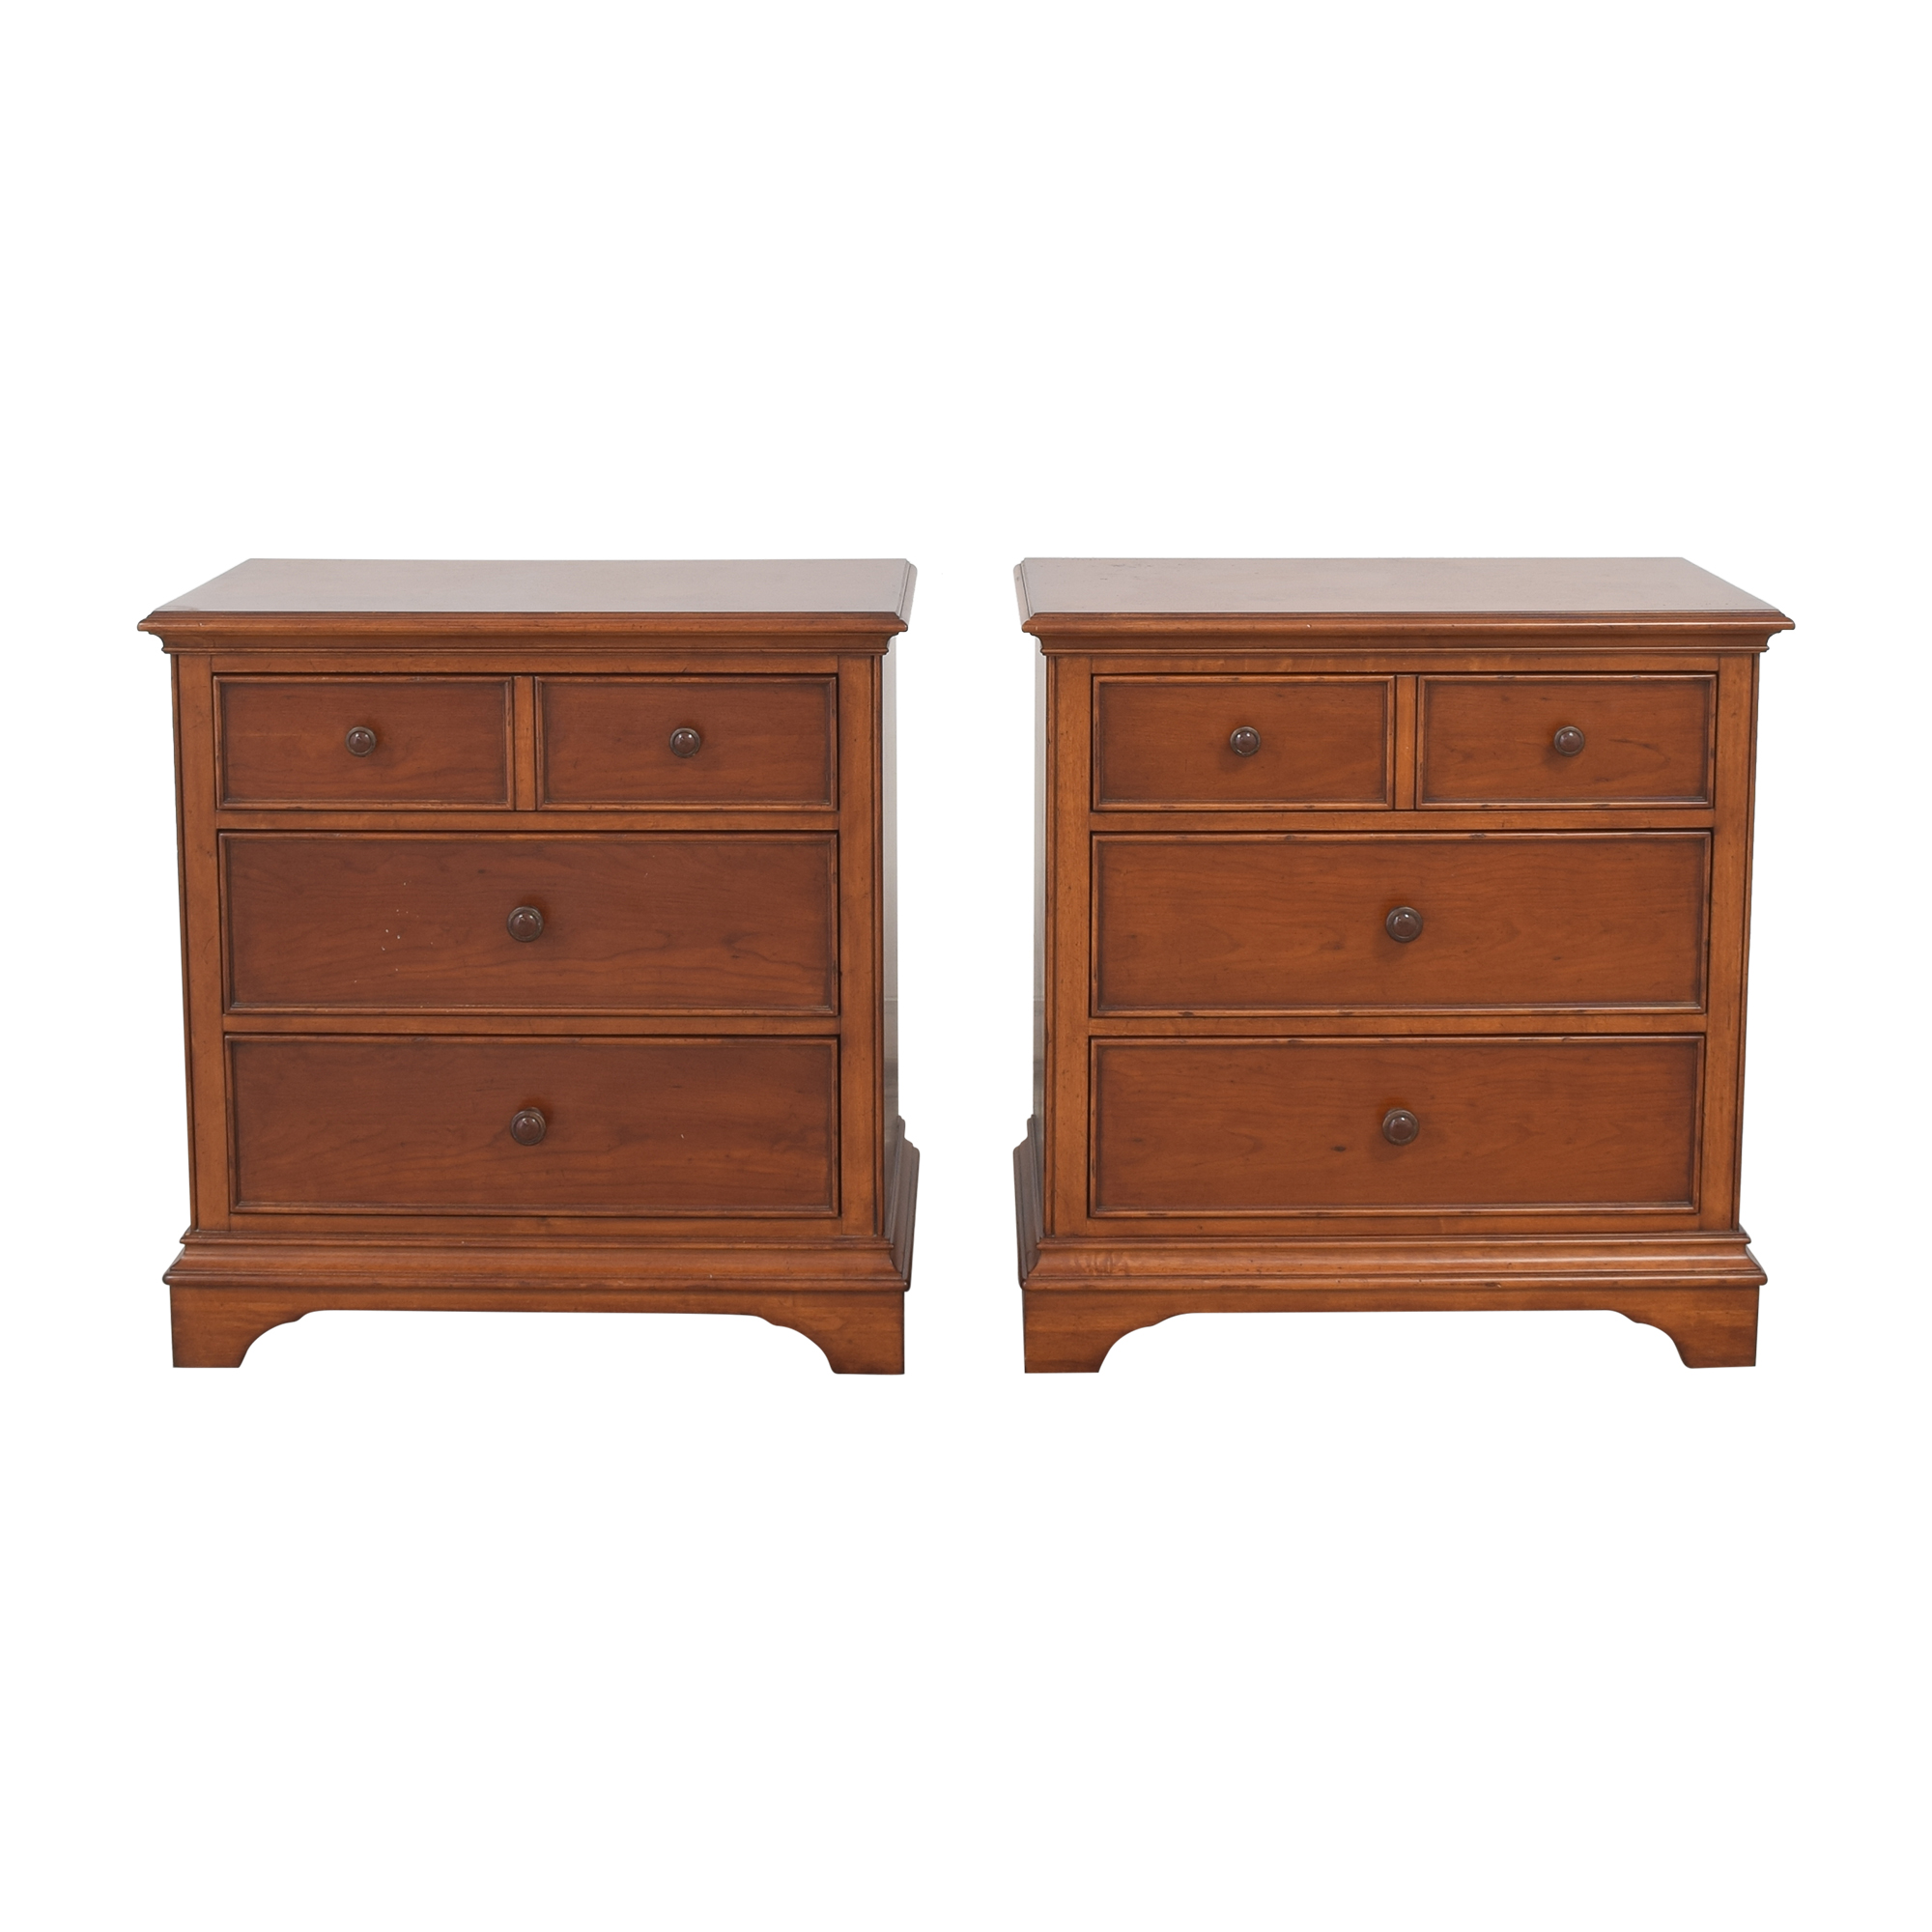 shop Thomasville Thomasville Three Drawer Nightstands online